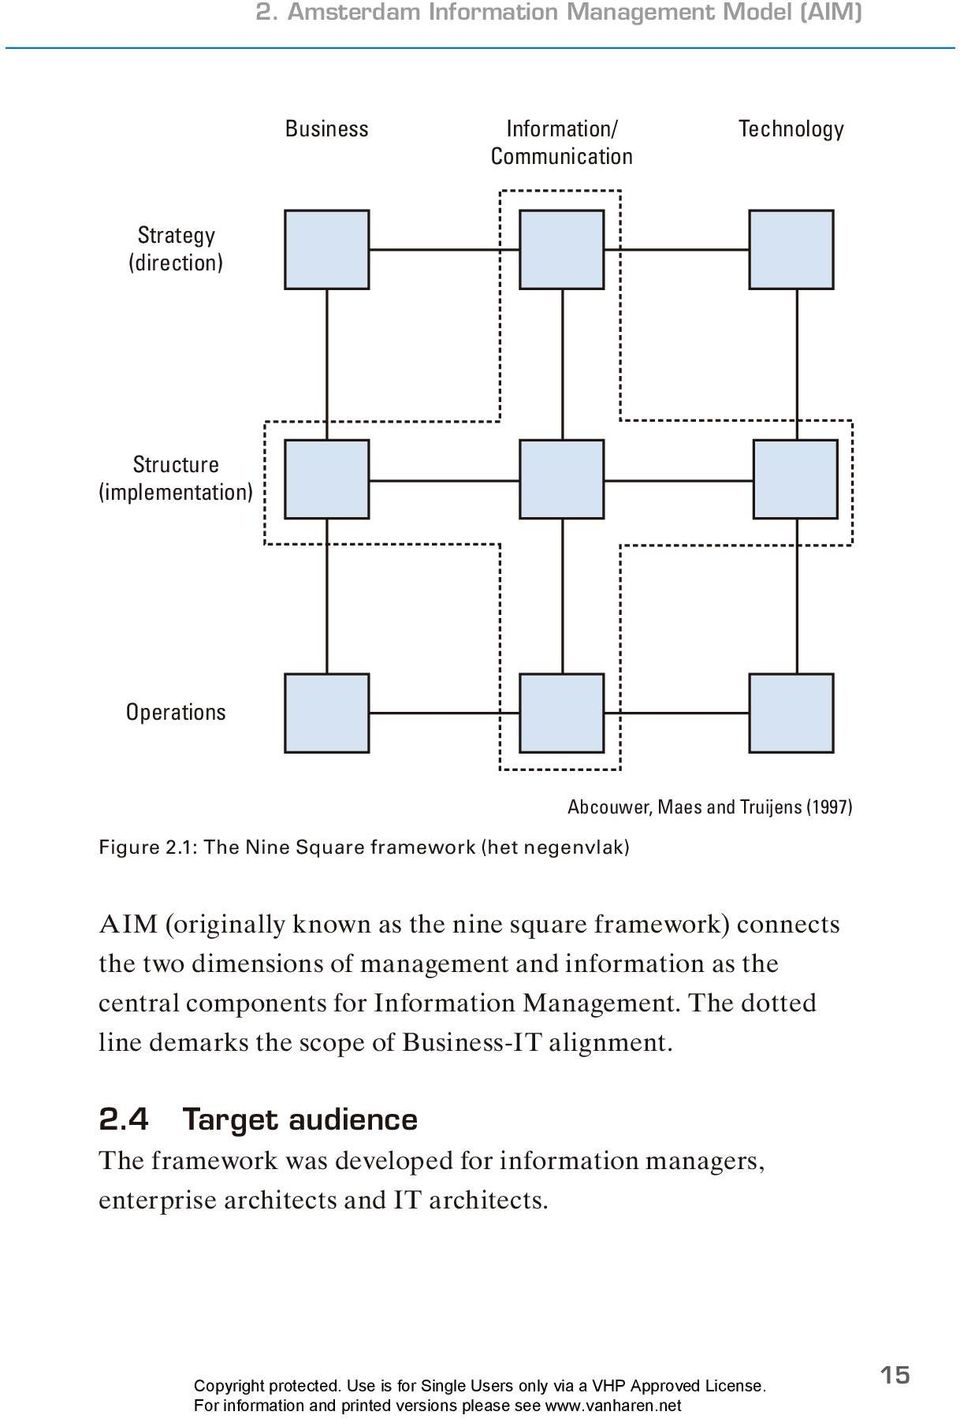 1: The Nine Square framework (het negenvlak) Abcouwer, Maes and Truijens (1997) AIM (originally known as the nine square framework) connects the